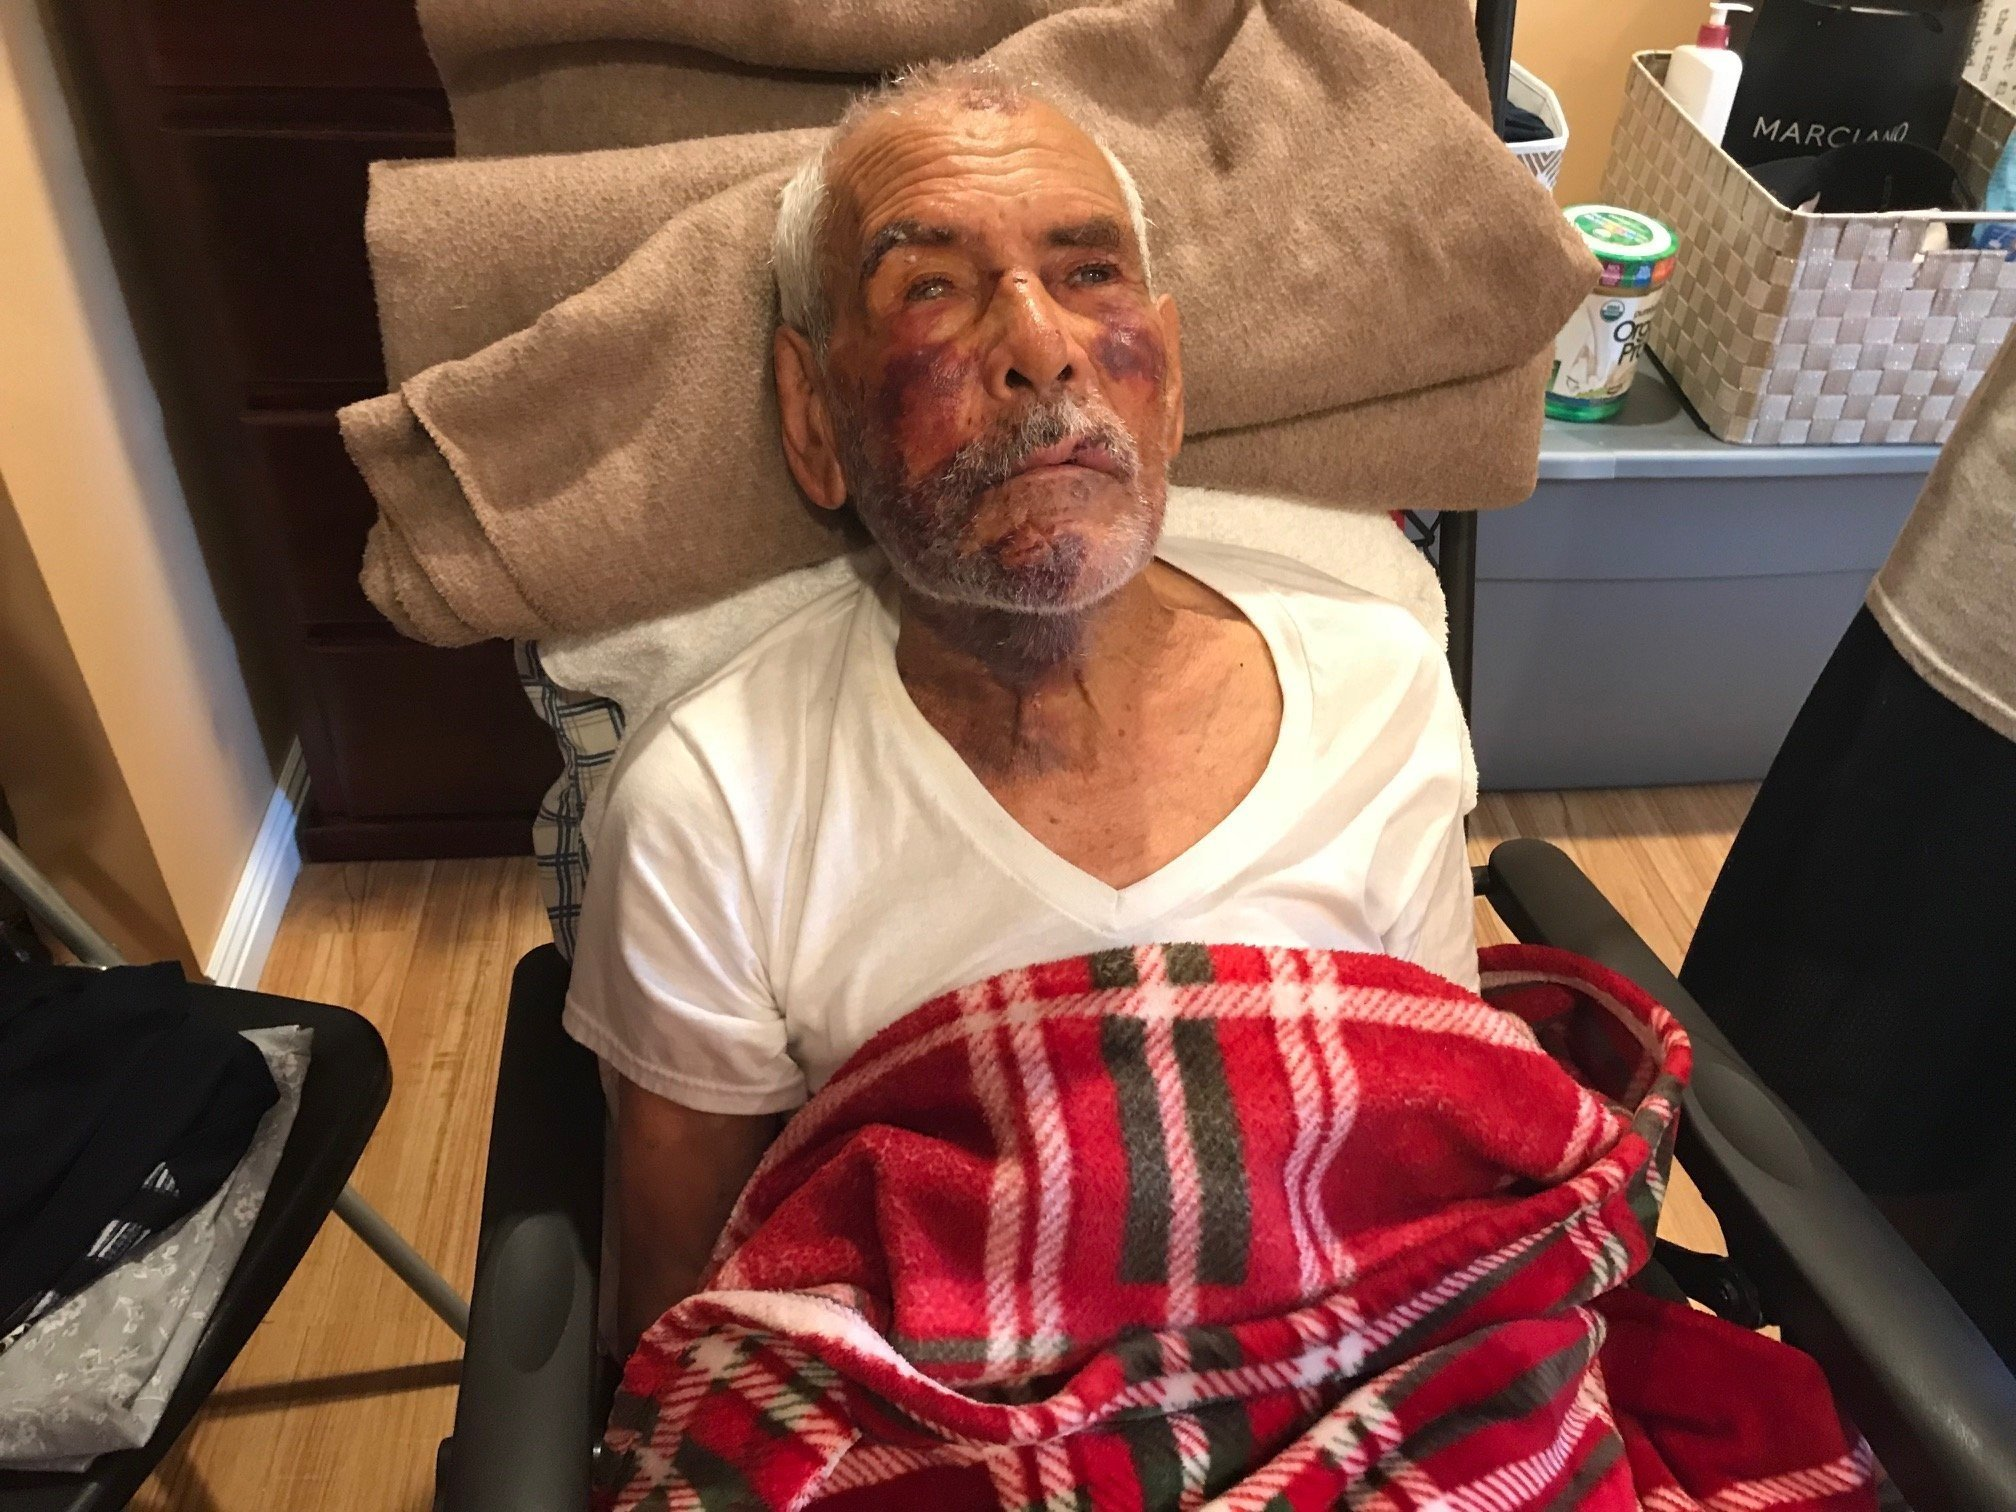 Woman charged with attempted murder after 91-year-old beaten with brick